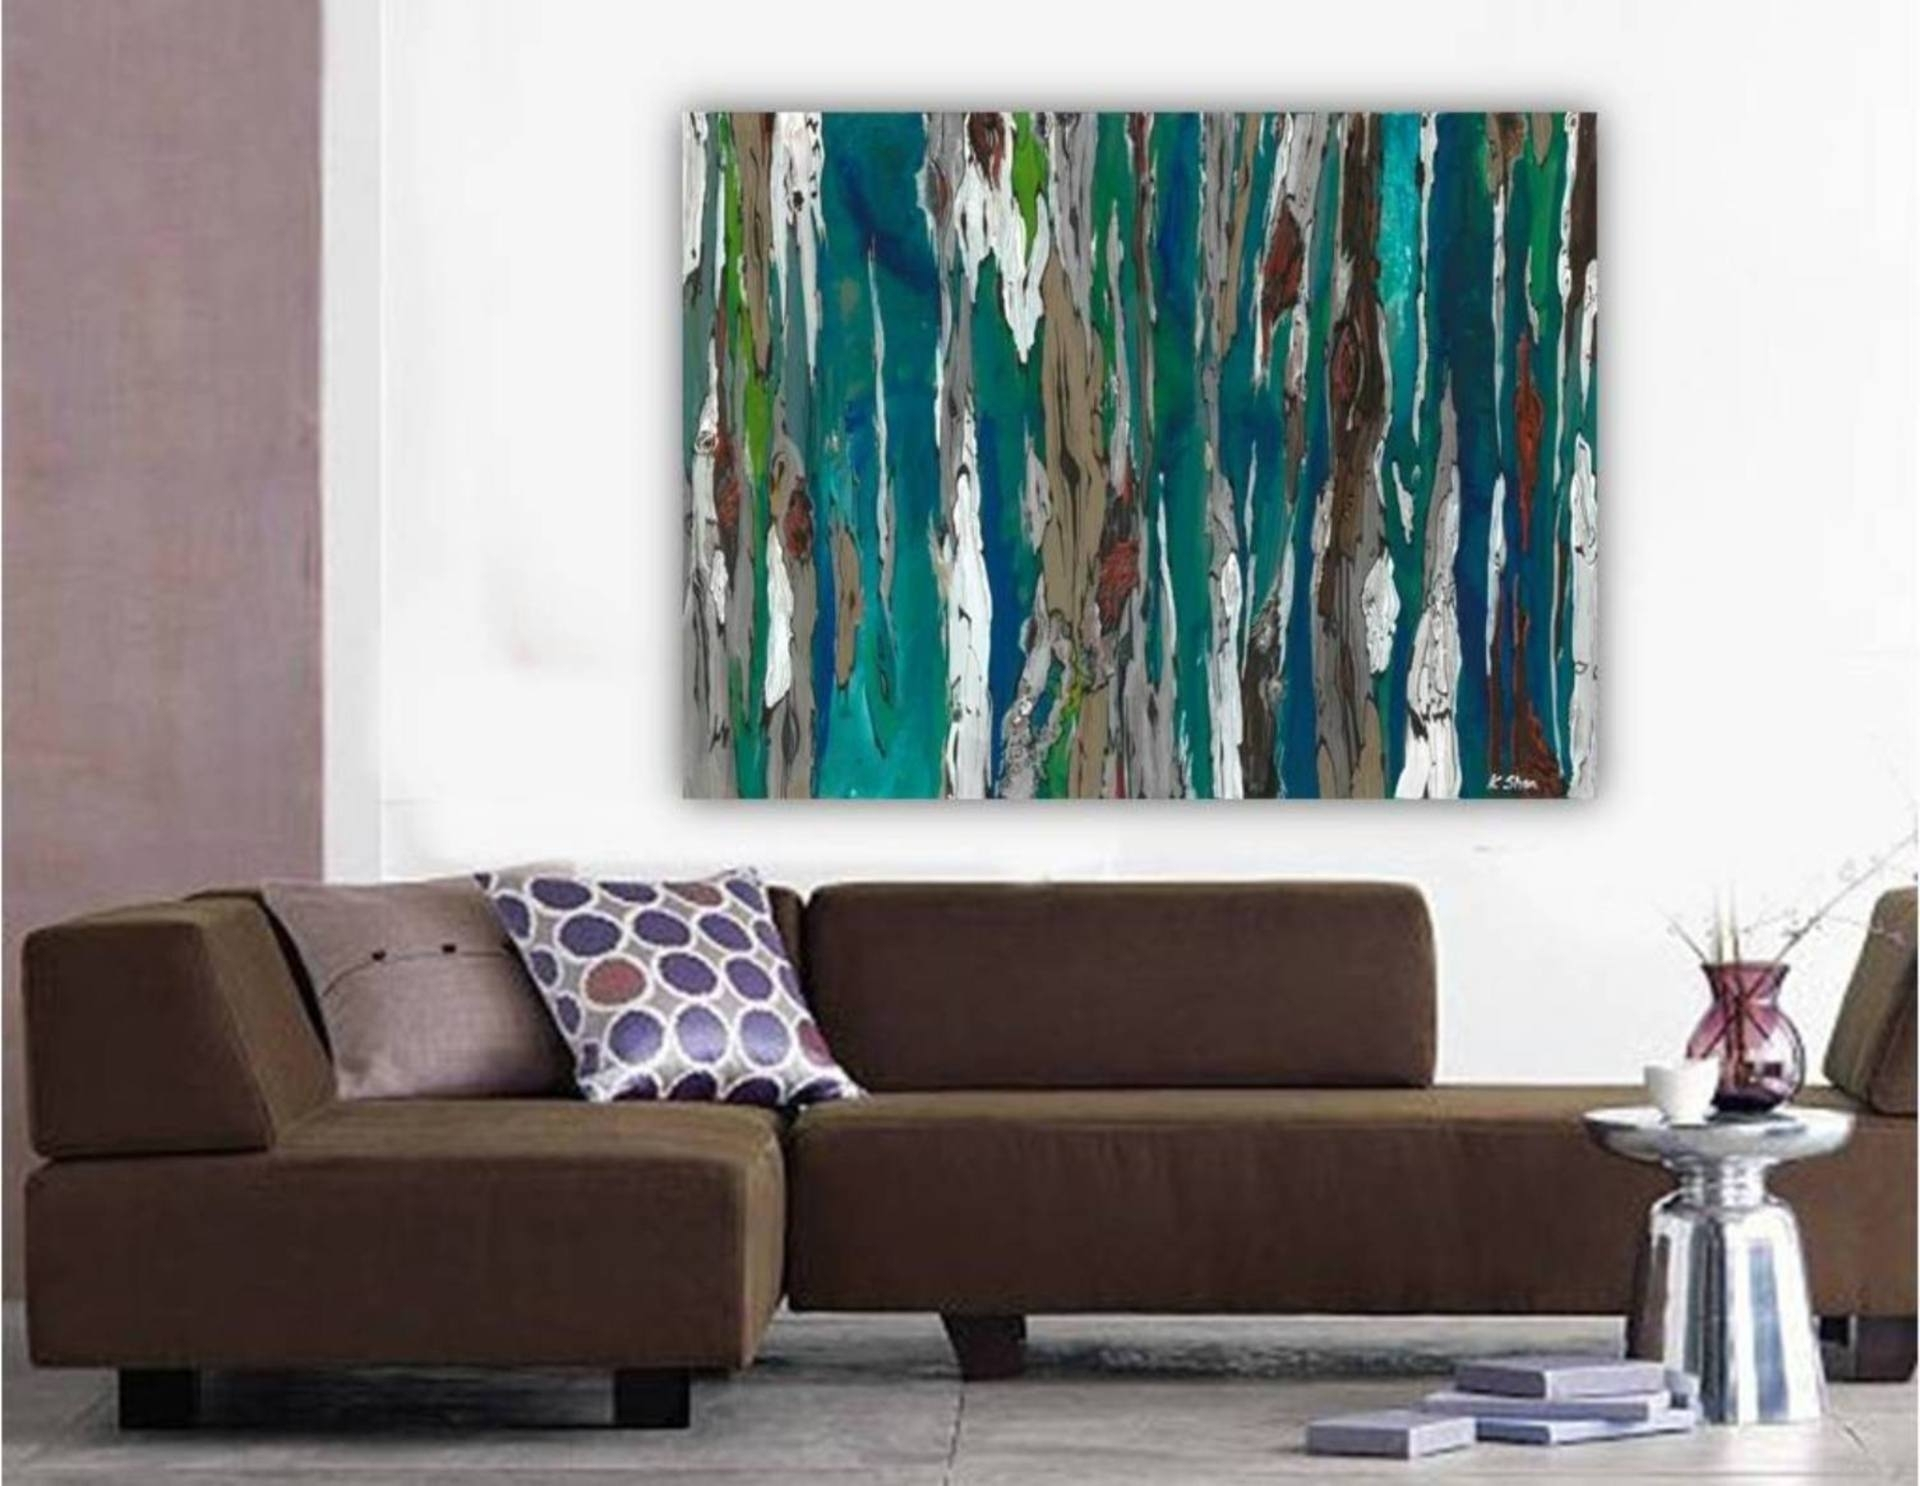 Saatchi Art: Large Contemporary Original Abstract Tree Landscape Within Best And Newest Teal And Brown Wall Art (View 8 of 20)